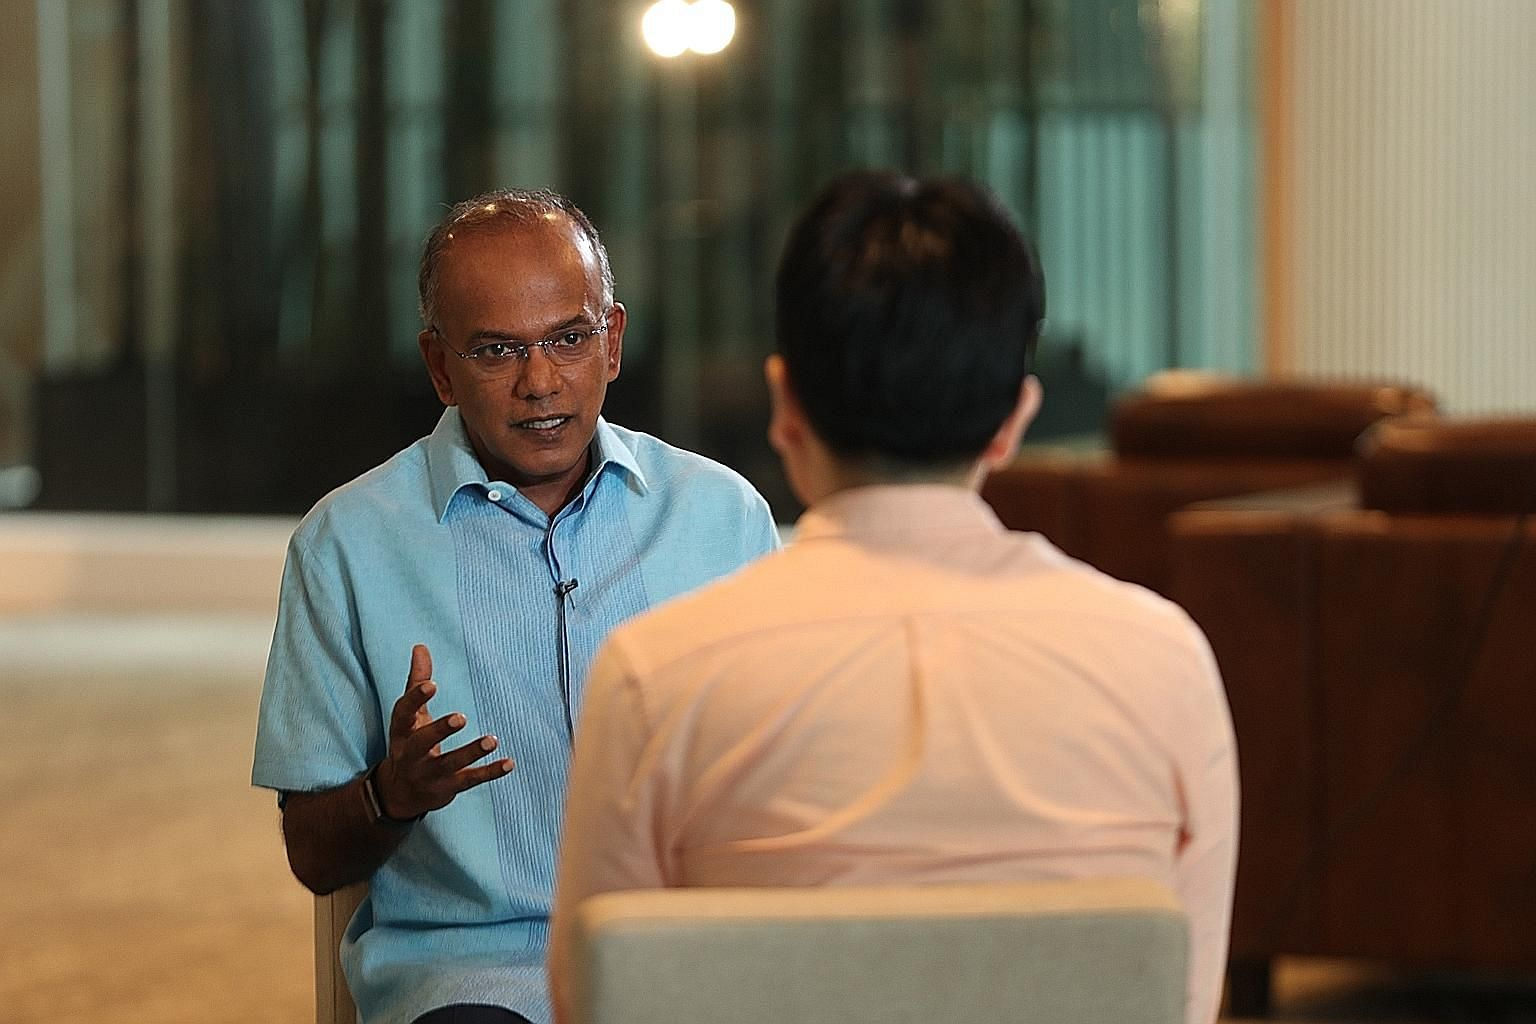 Law and Home Affairs Minister K. Shanmugam said at the interview yesterday that the task at hand is to tell people honestly what the issues facing Singapore are, and propose the best solutions. He said he has found, from speaking to residents, that t